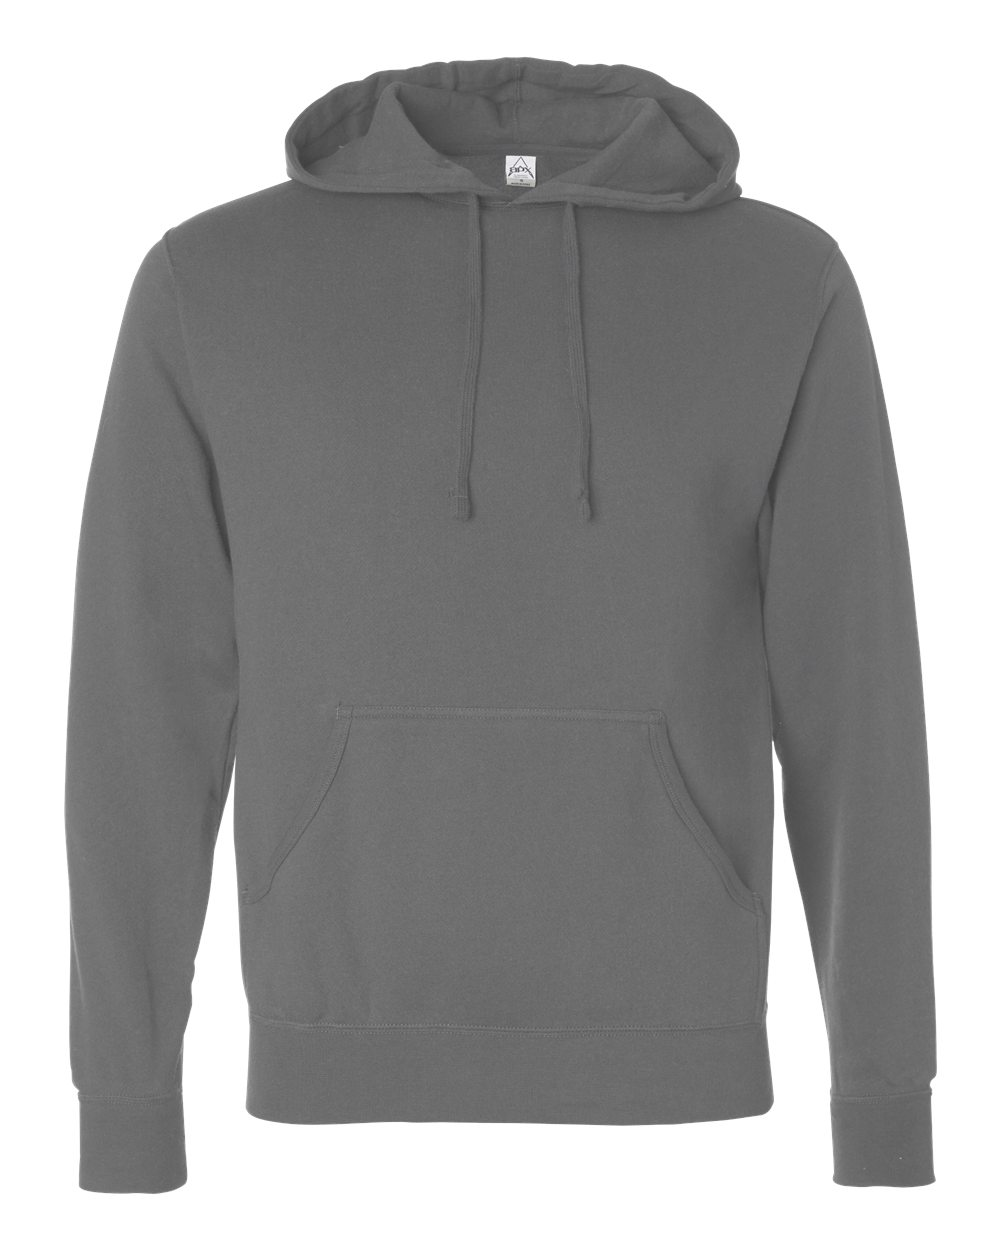 Independent_Trading_Co._AFX4000_Solid_Charcoal_Front_High.jpg